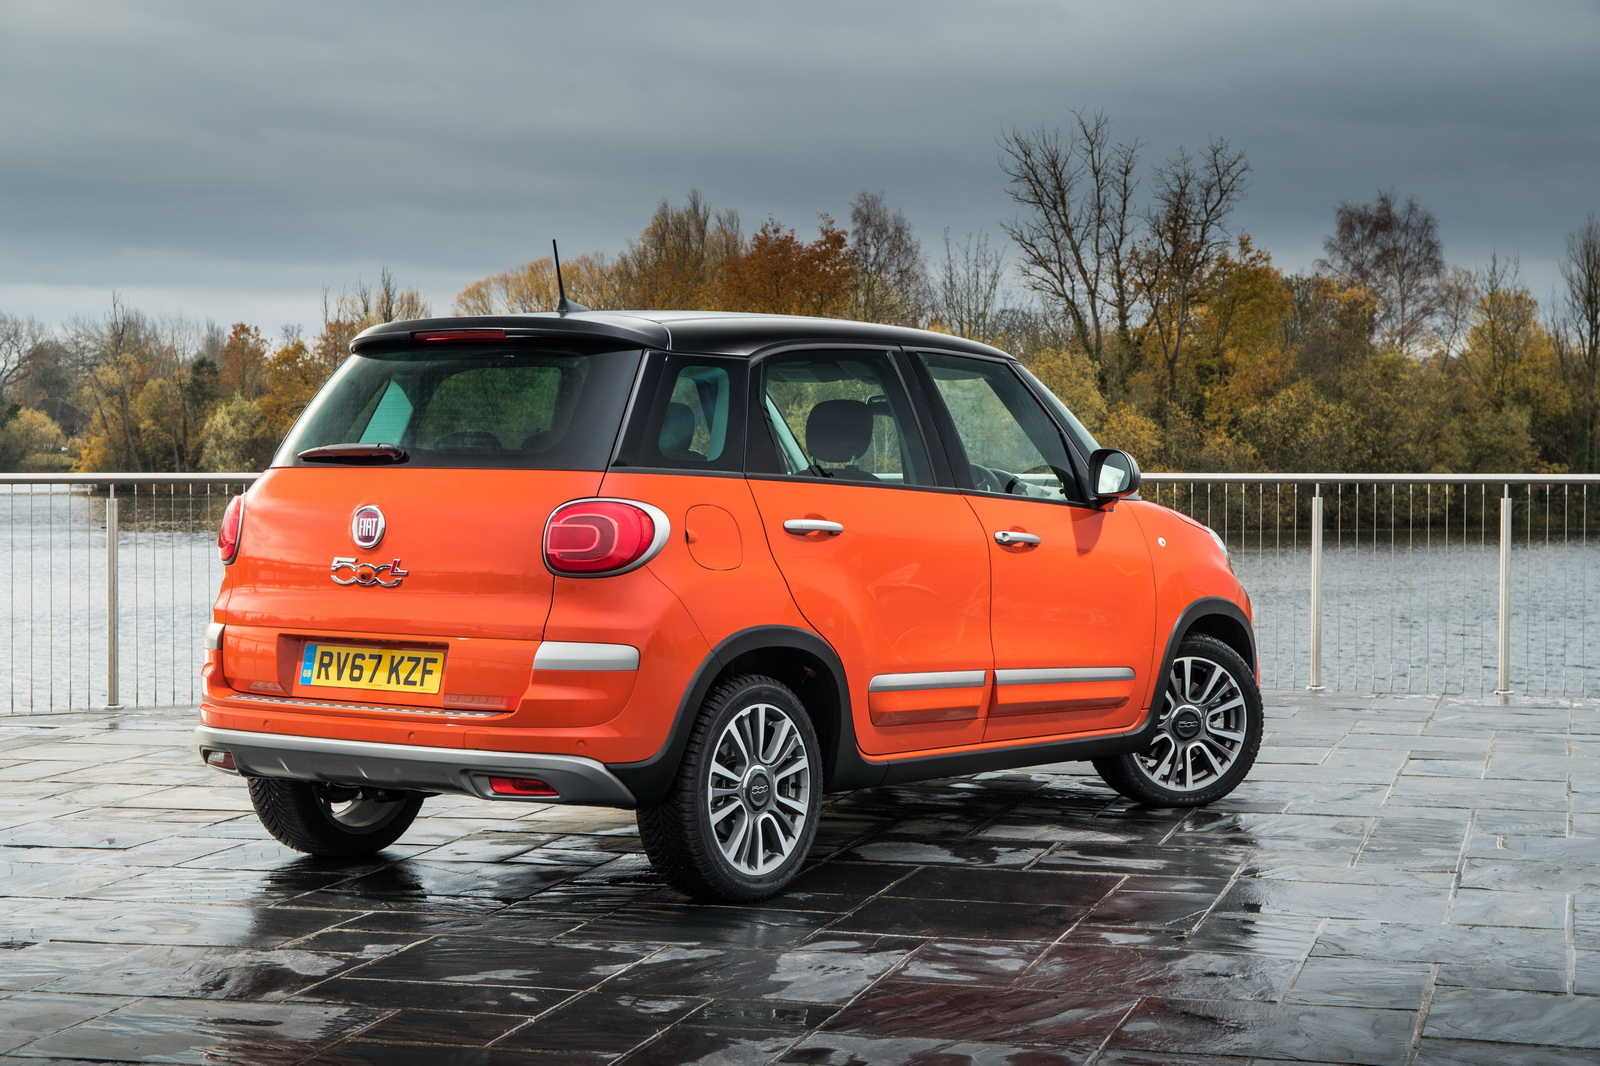 new fiat 500l arrives in the uk priced from 16 195 carscoops. Black Bedroom Furniture Sets. Home Design Ideas